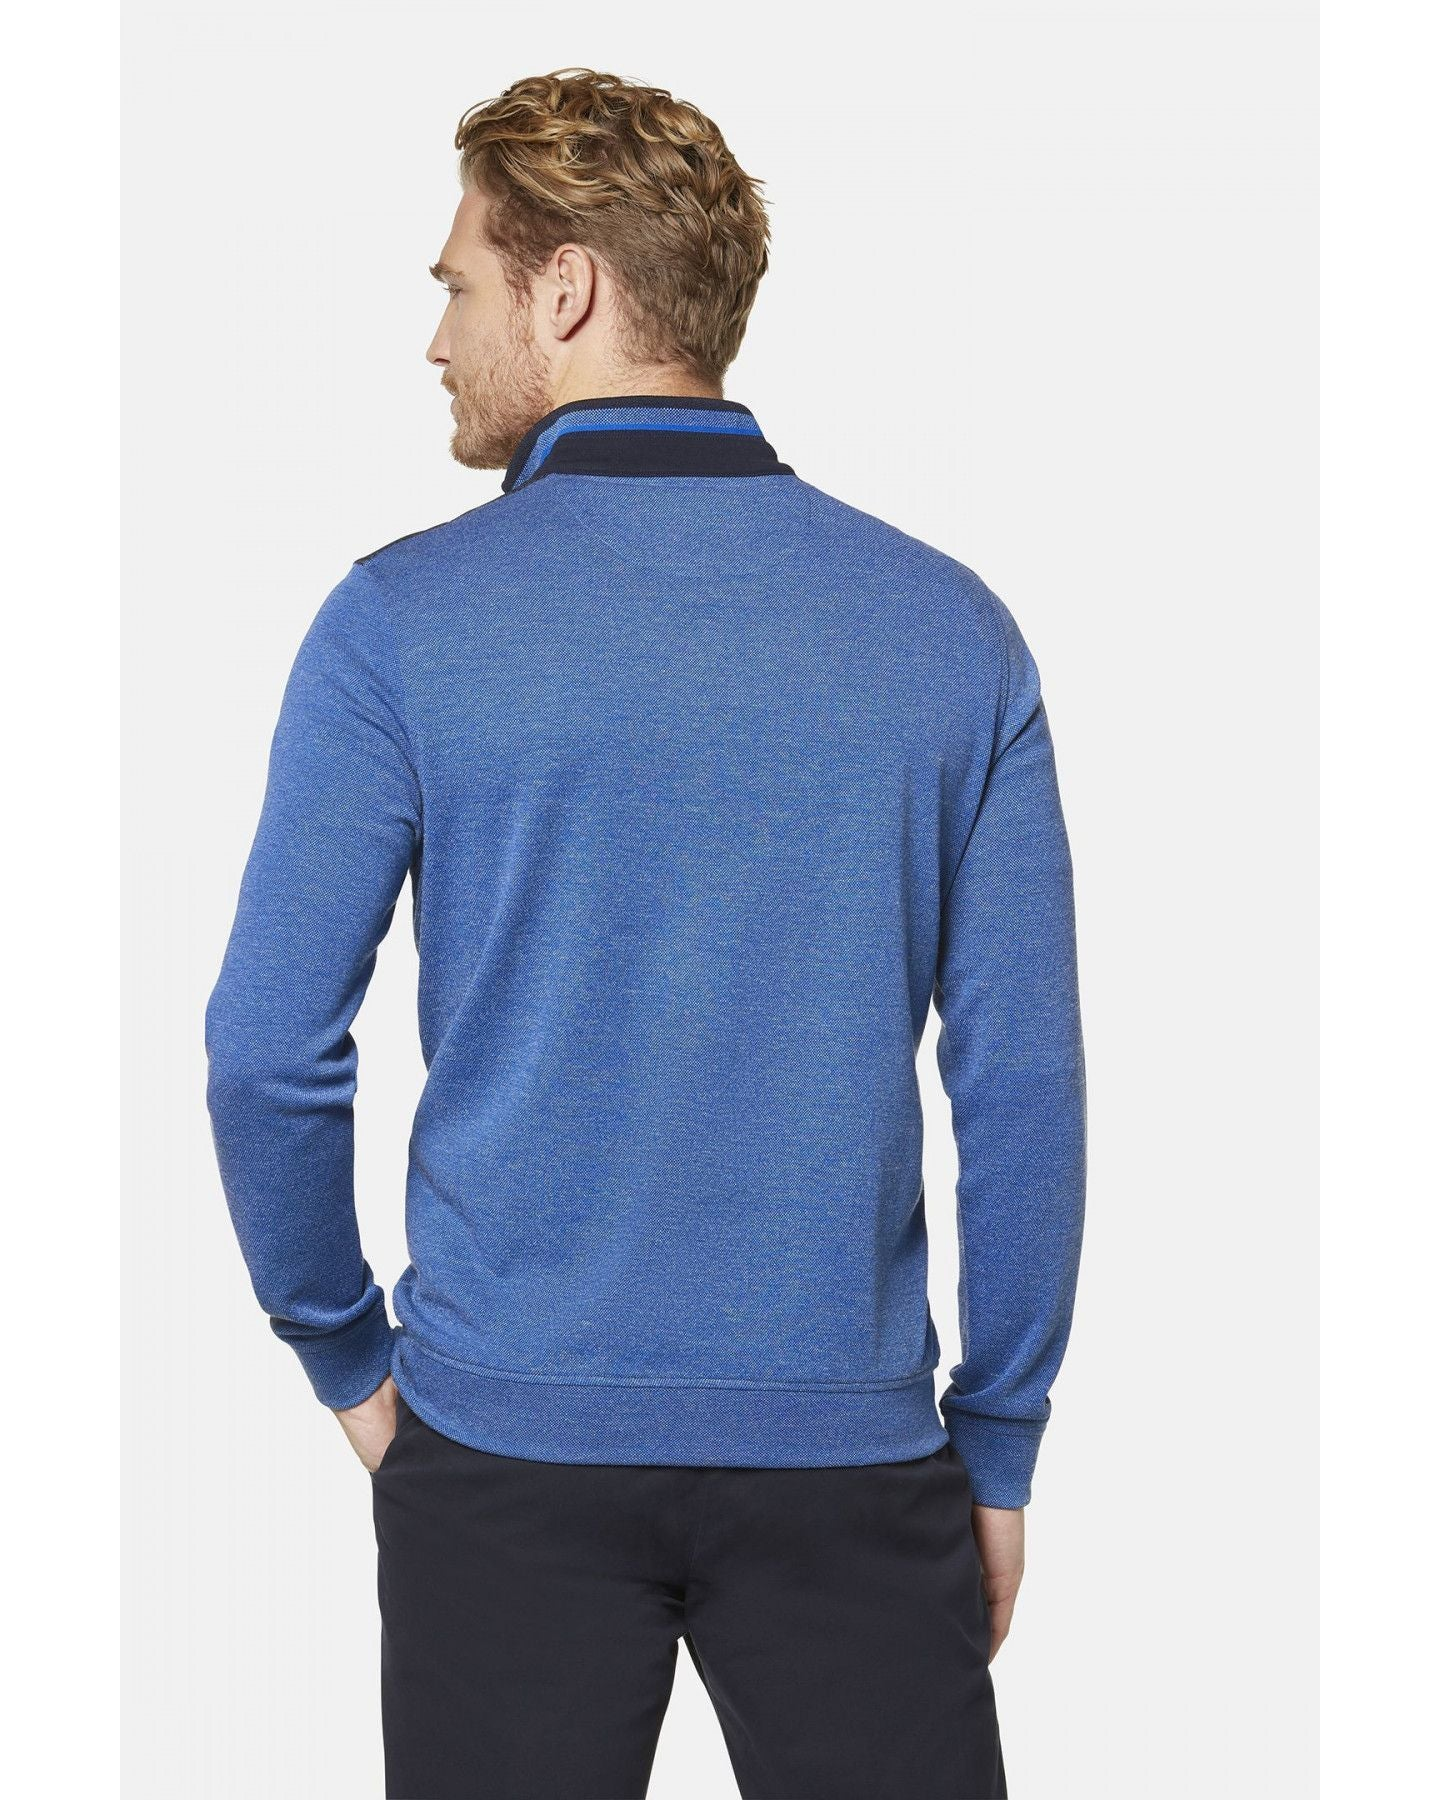 BUGATTI HALF-ZIP SWEATSHIRT IN BLUE